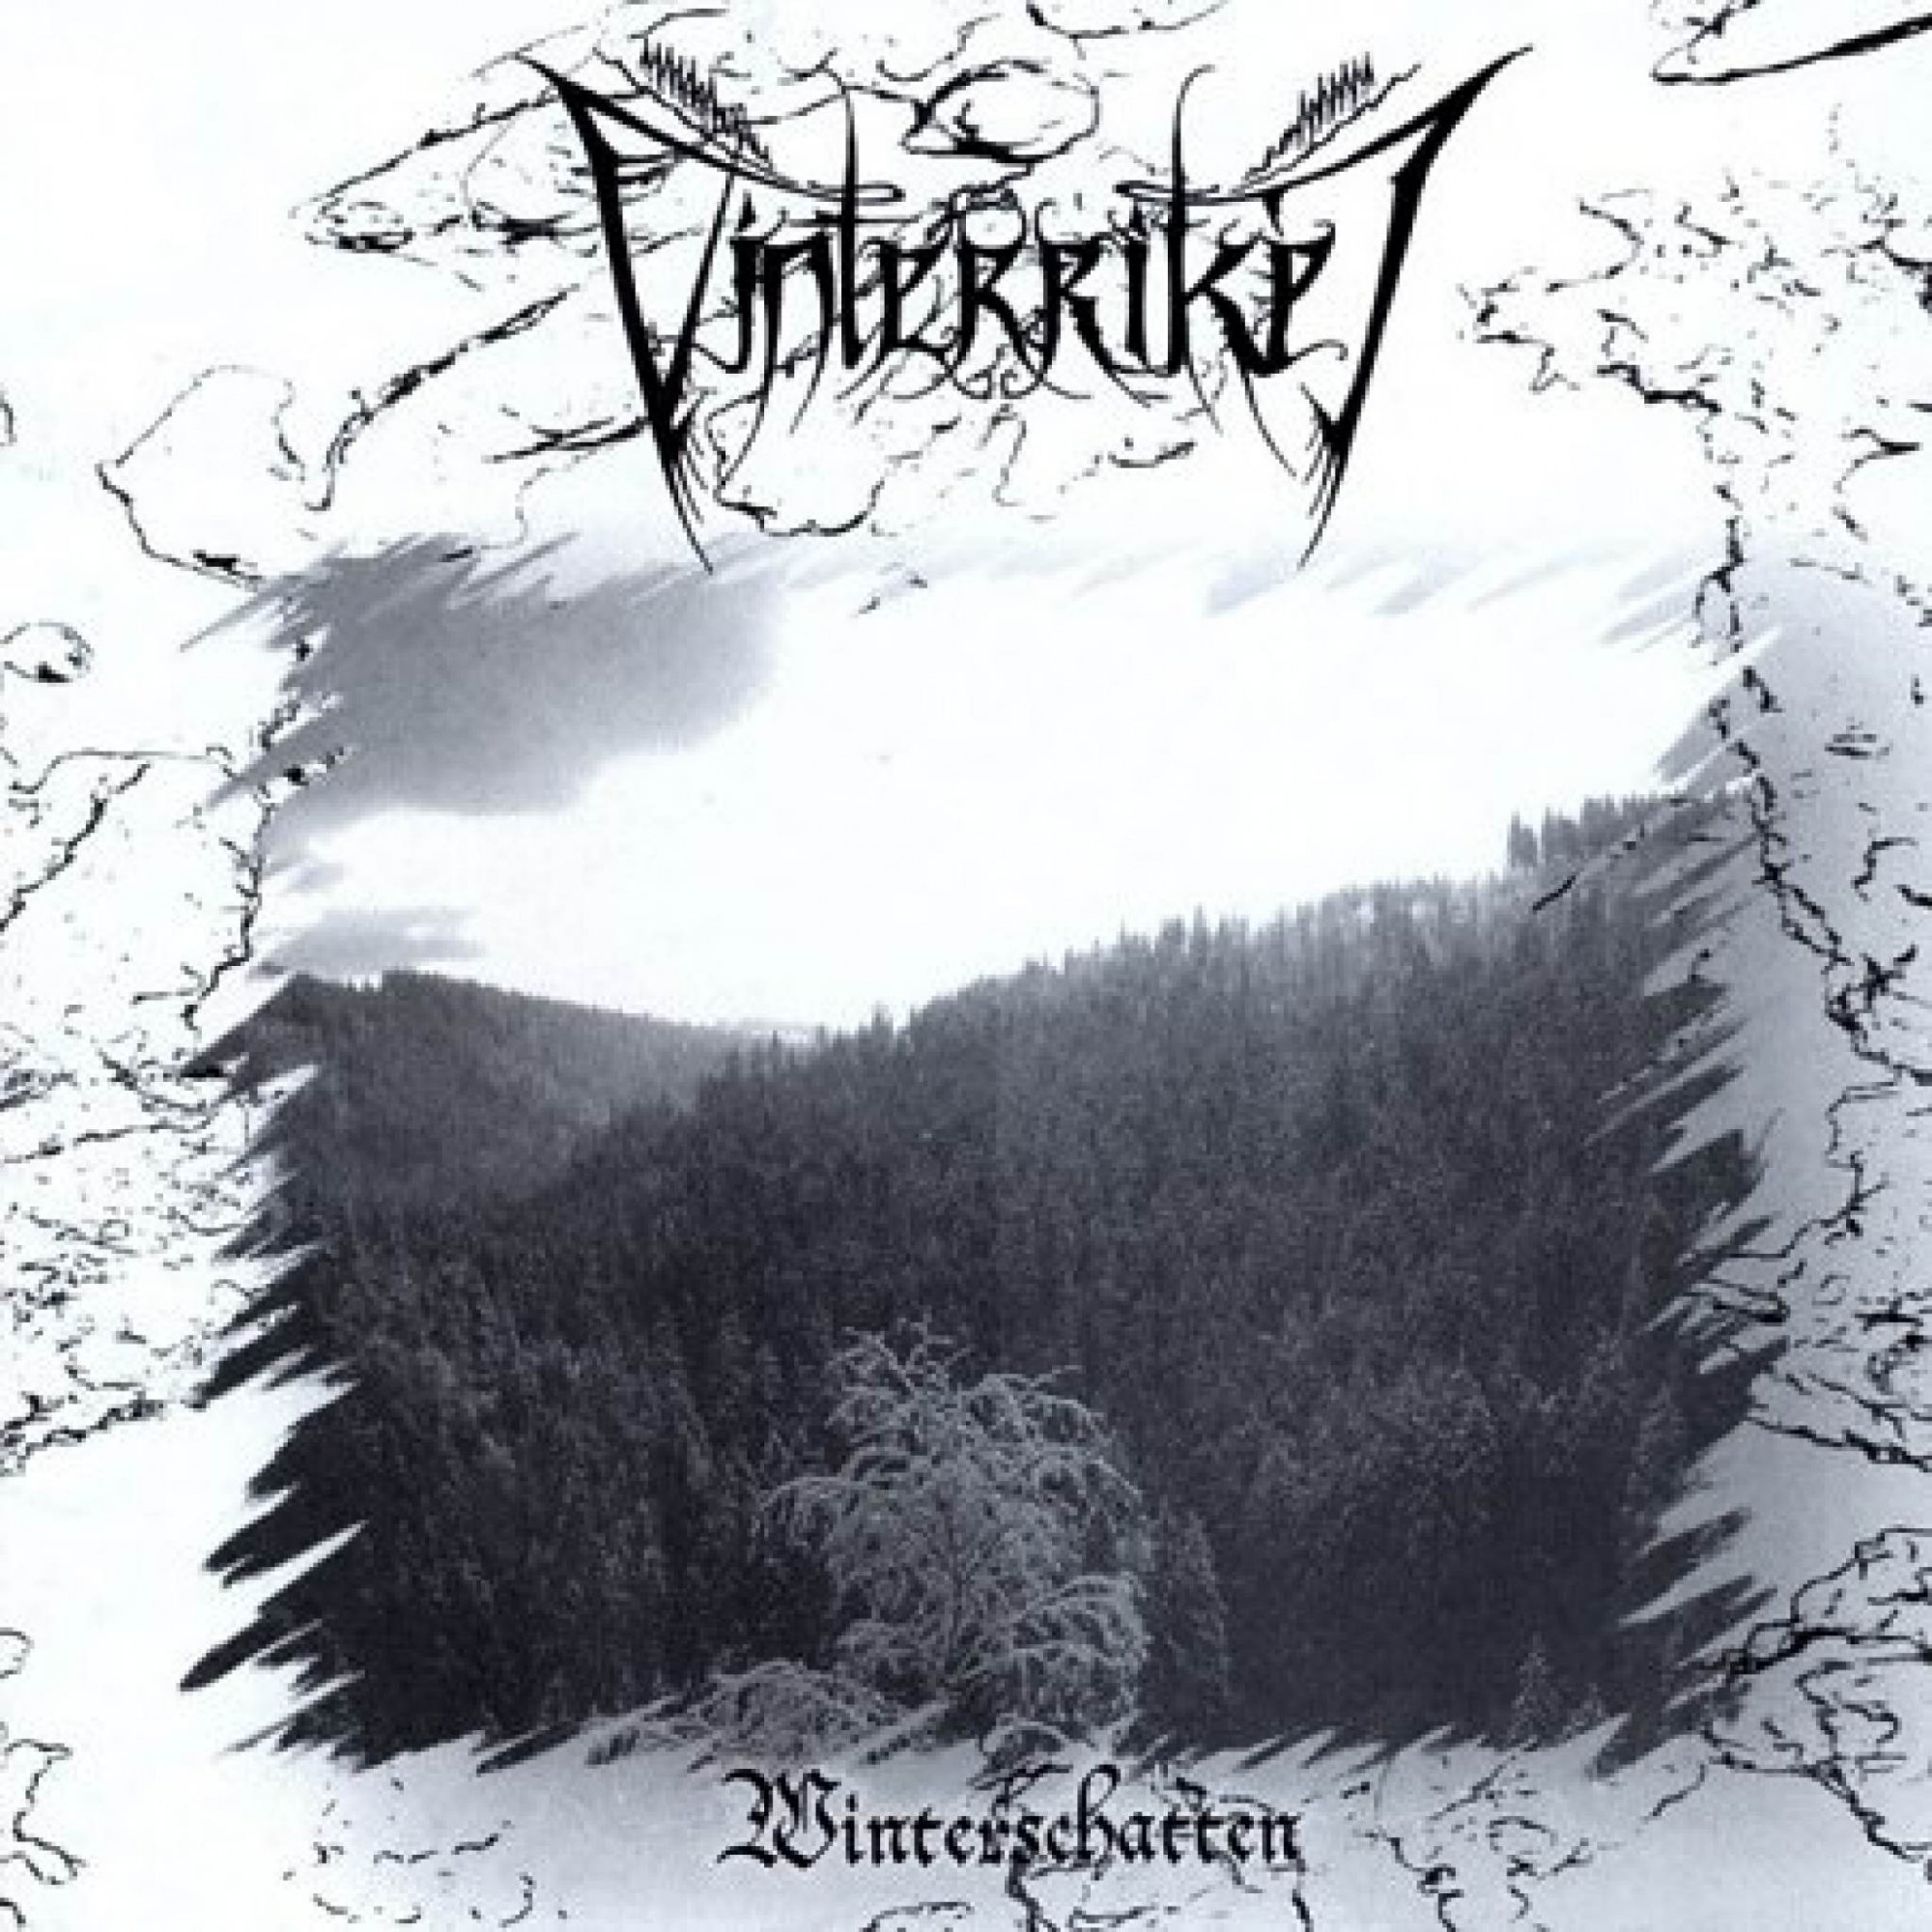 Review for Vinterriket - Winterschatten